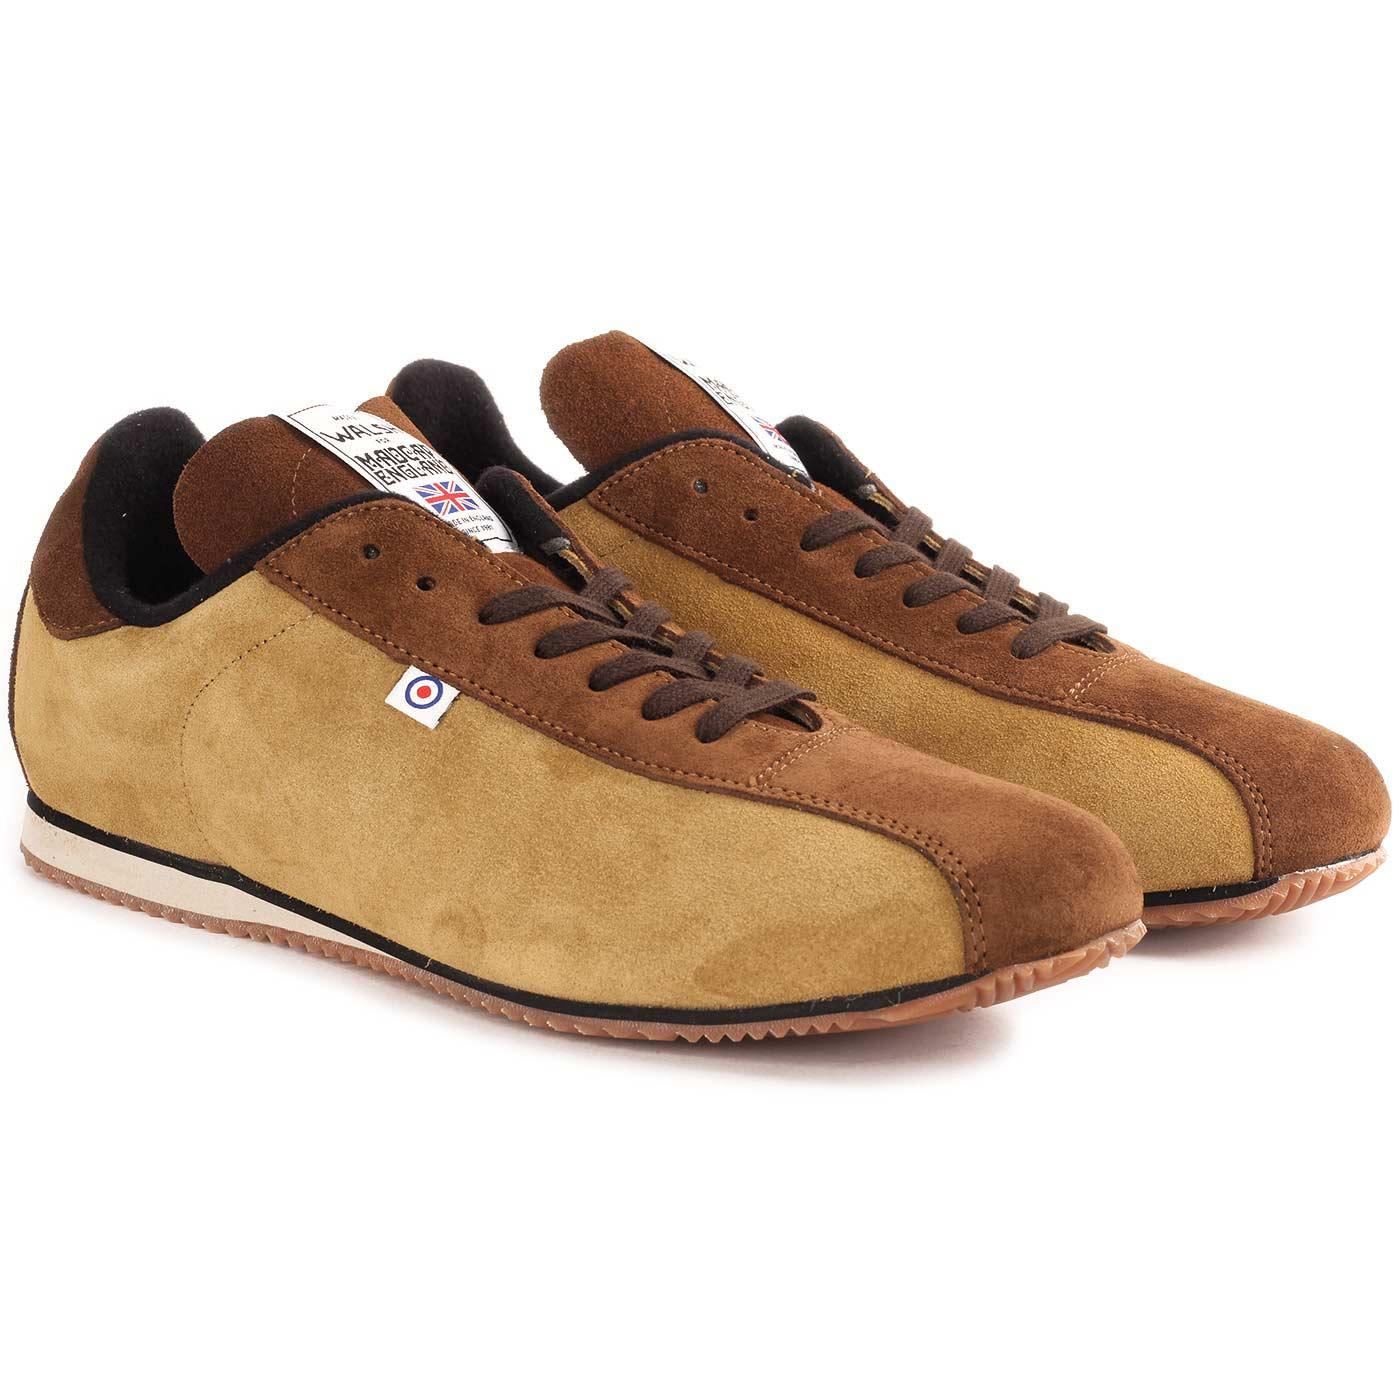 Madcap England x Walsh Oasis Rapier Made in England Retro Bowling Trainers